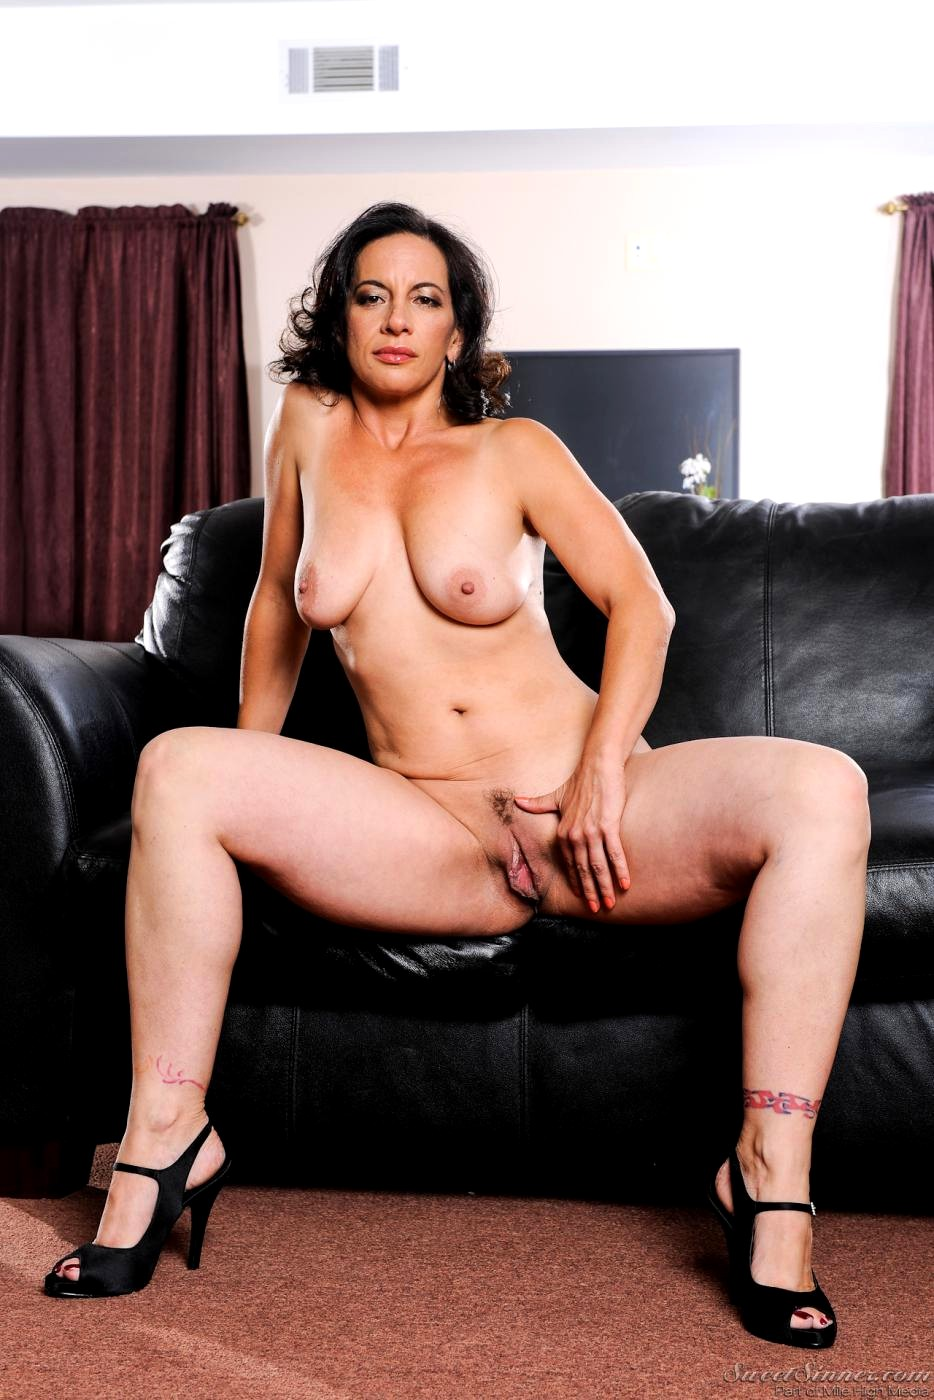 Milf gallery softcore only reserve